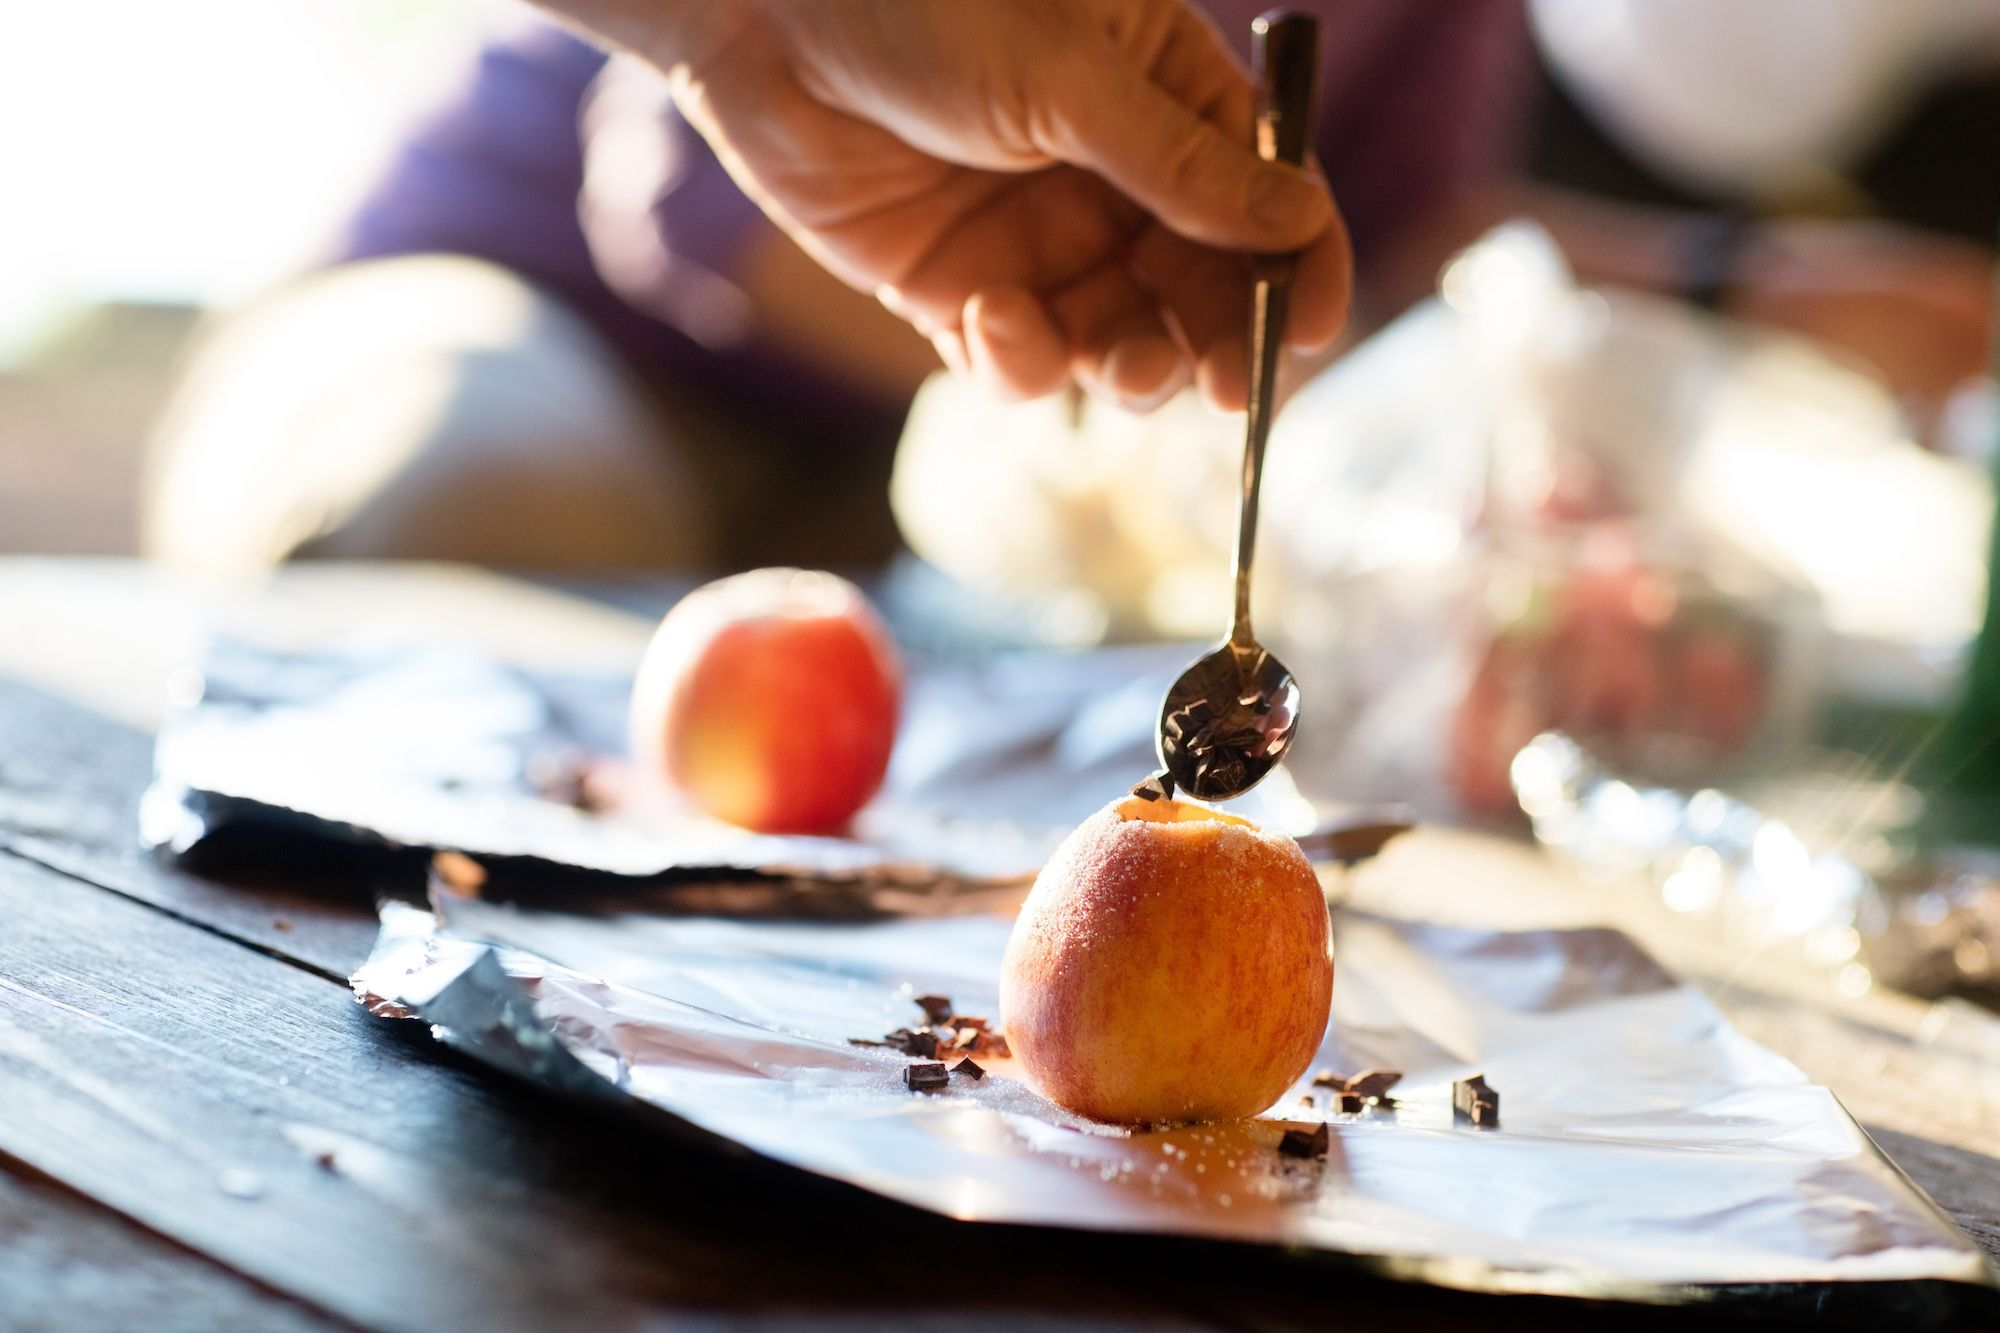 stuffing chocolate into campfire baked apples with a spoon